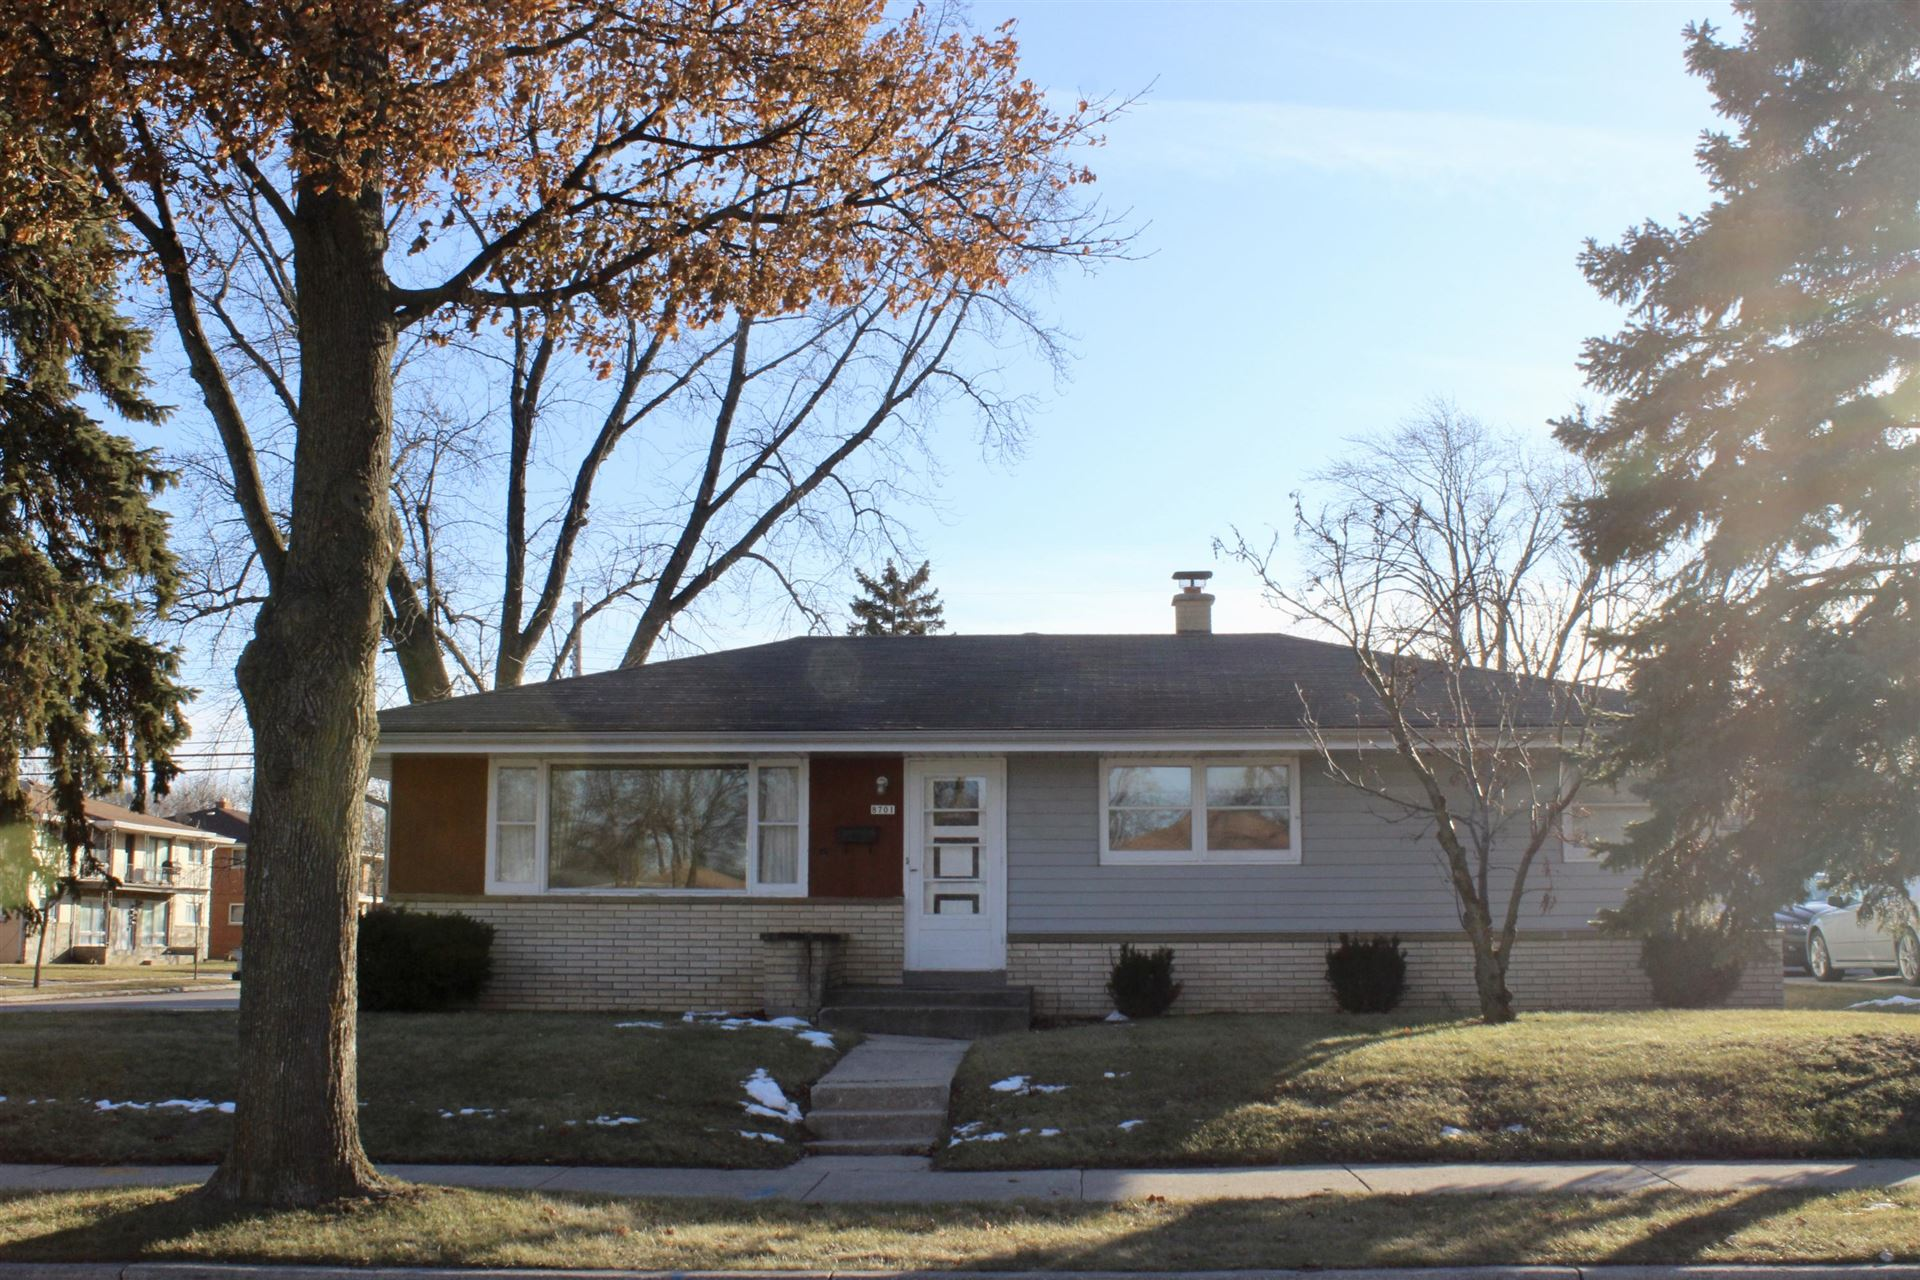 8701 W Brentwood Ave, Milwaukee, WI 53224 - #: 1672457